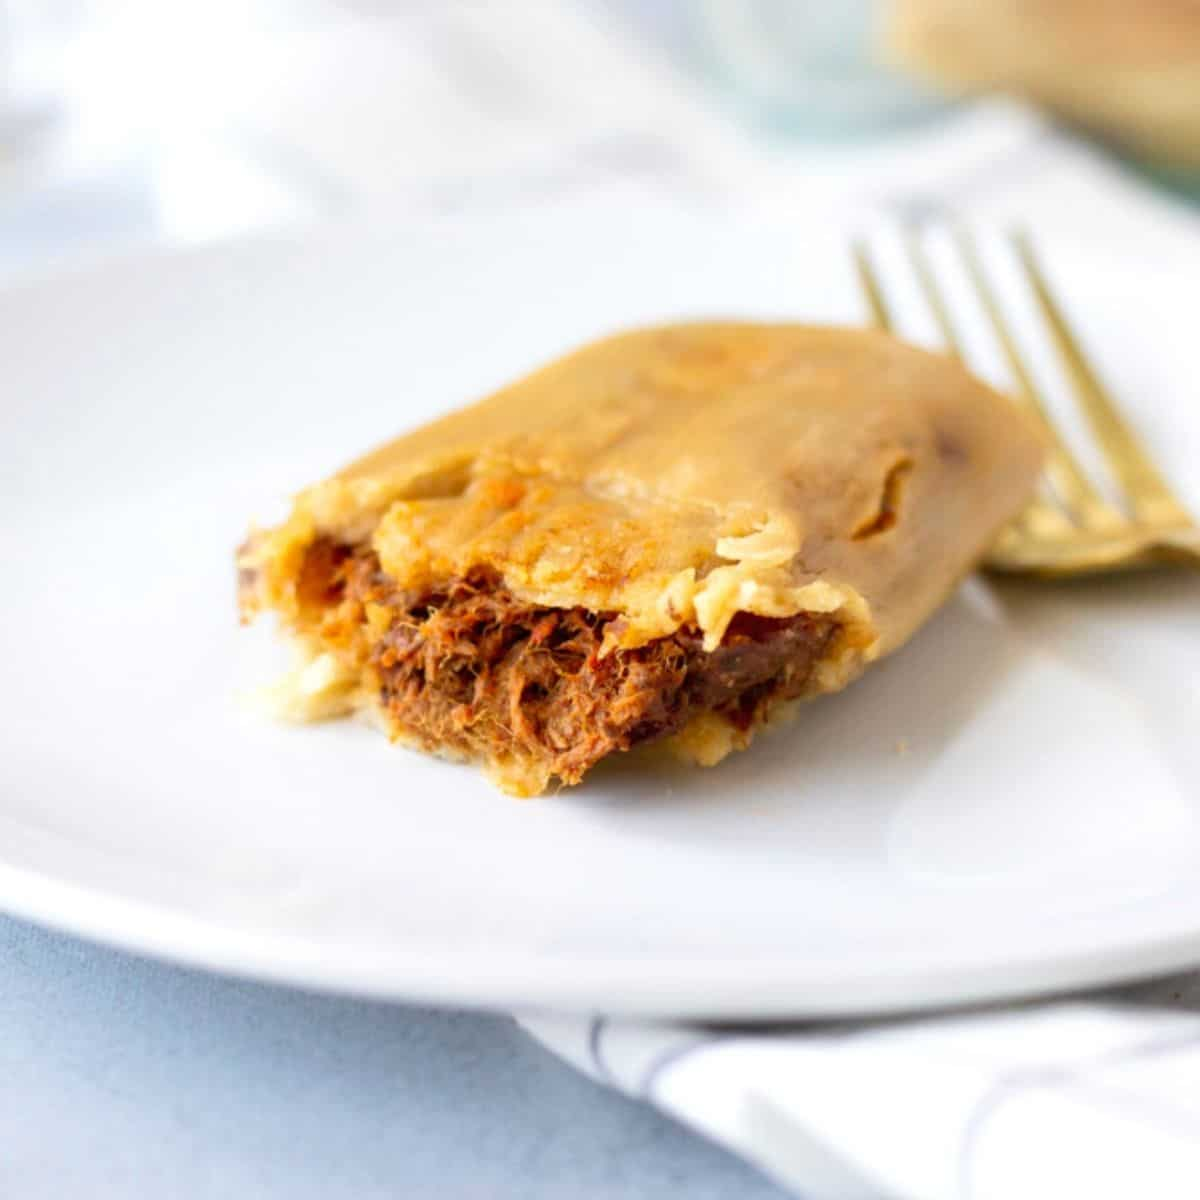 Up close view of a single beef tamale on a white plate with a gold fork on the side.